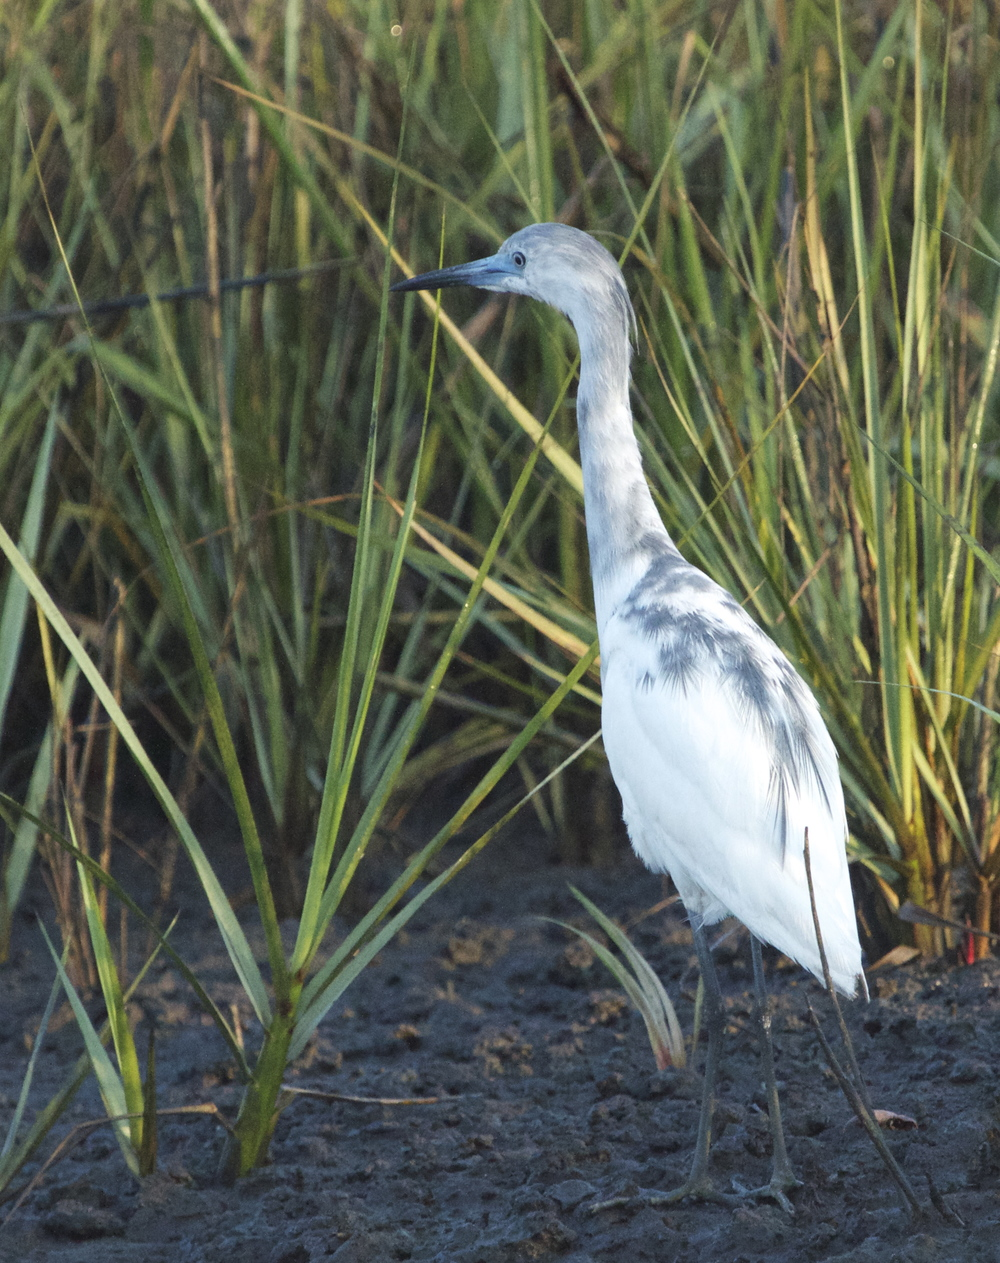 Juvenile Little Blue Heron, born all white at birth, it becomes spotted with blue and finally all blue with maroon head feathers.